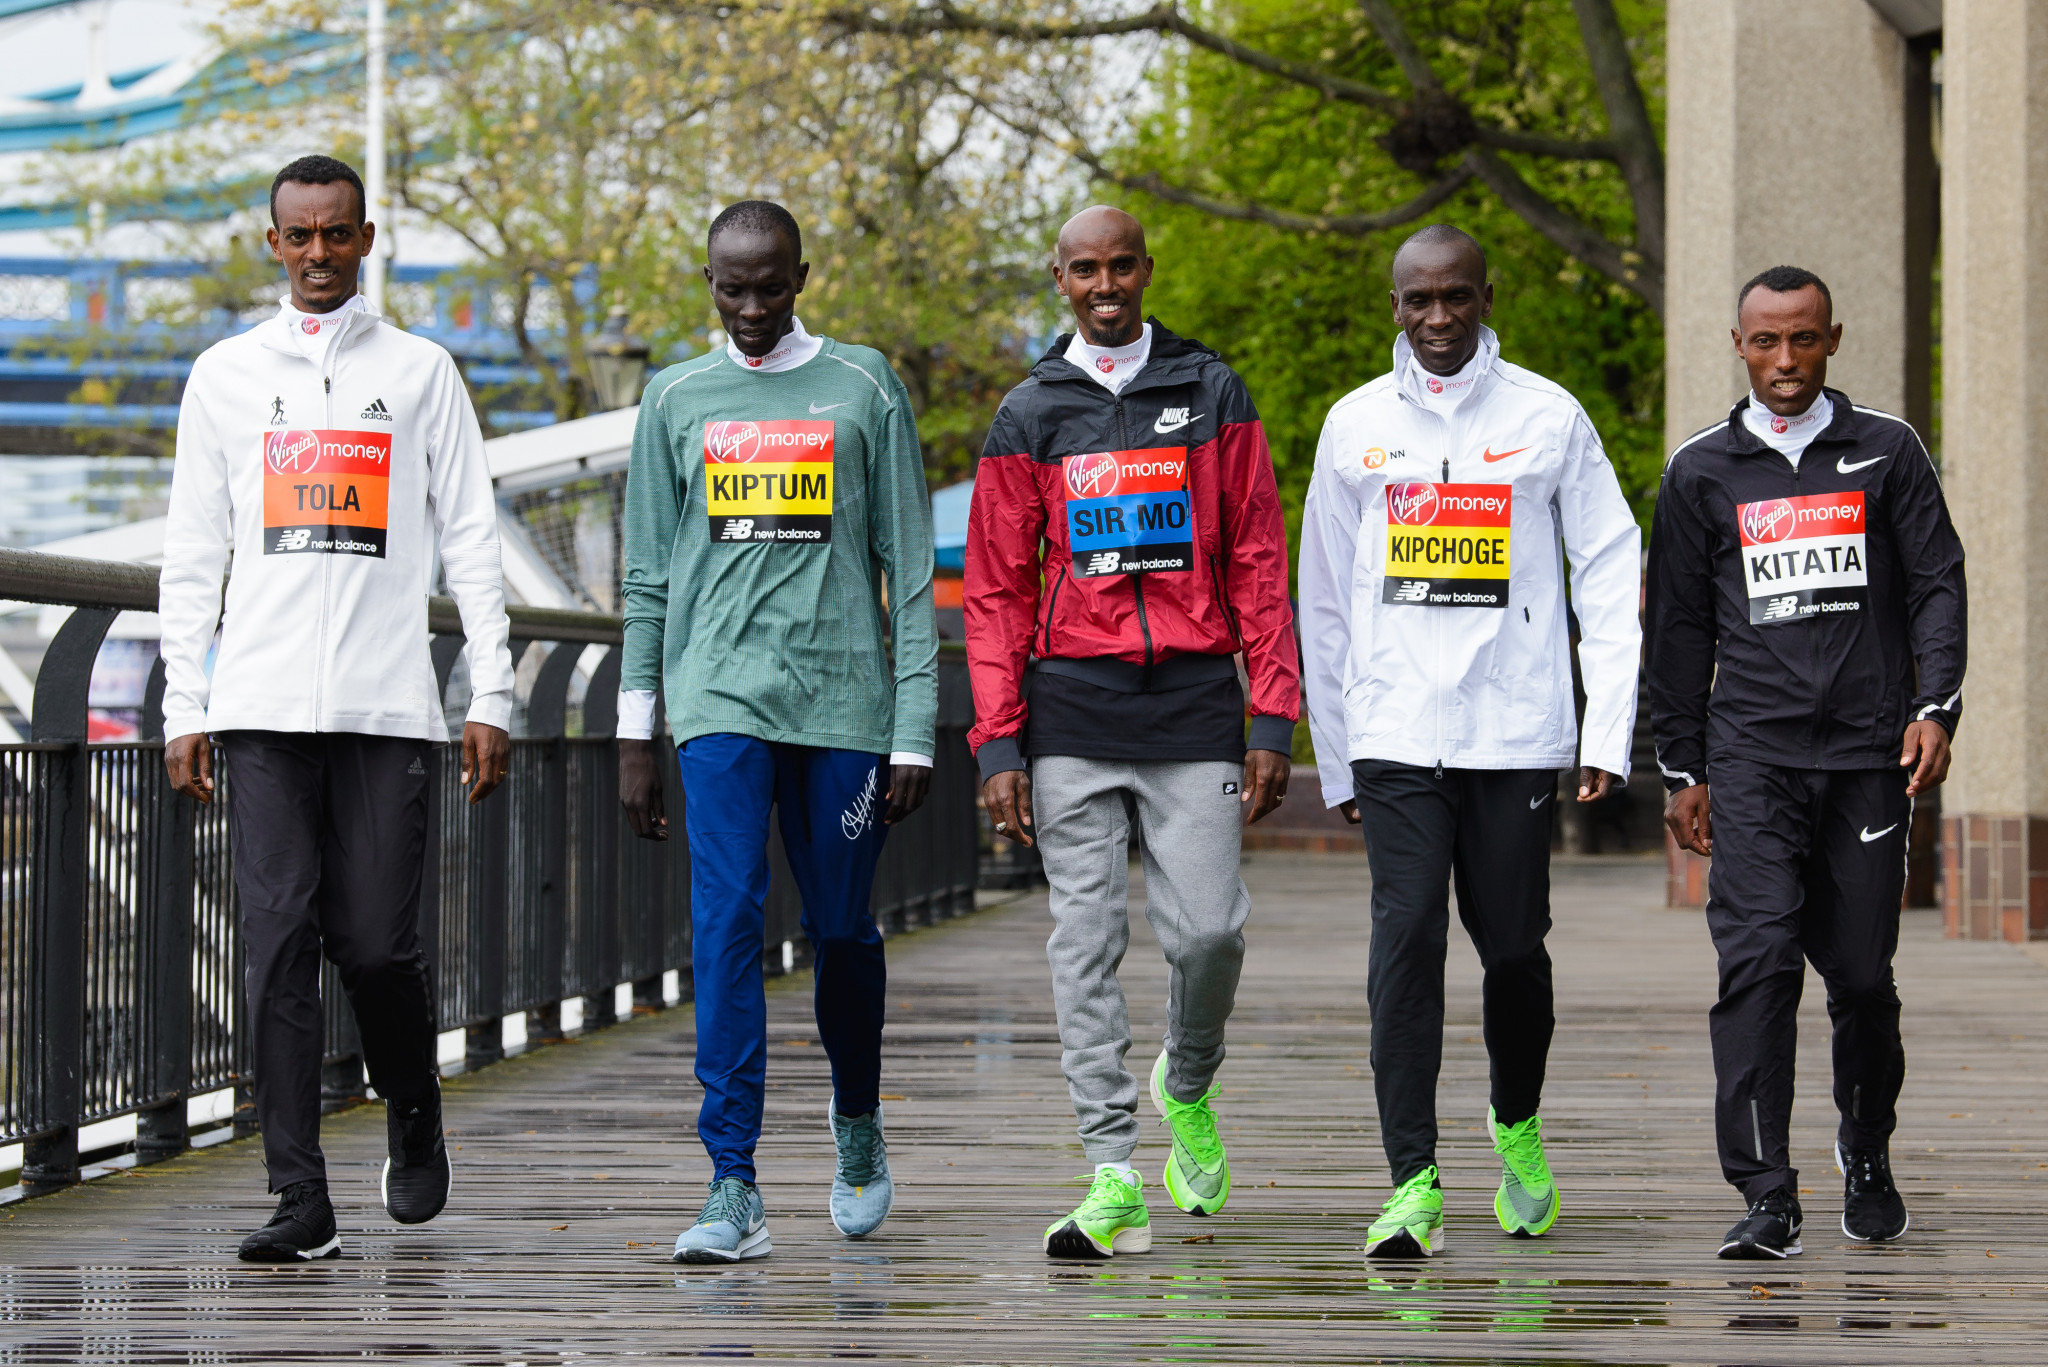 Abraham Kiptum had been provisionally suspended two days before this year's London Marathon ©Getty Images